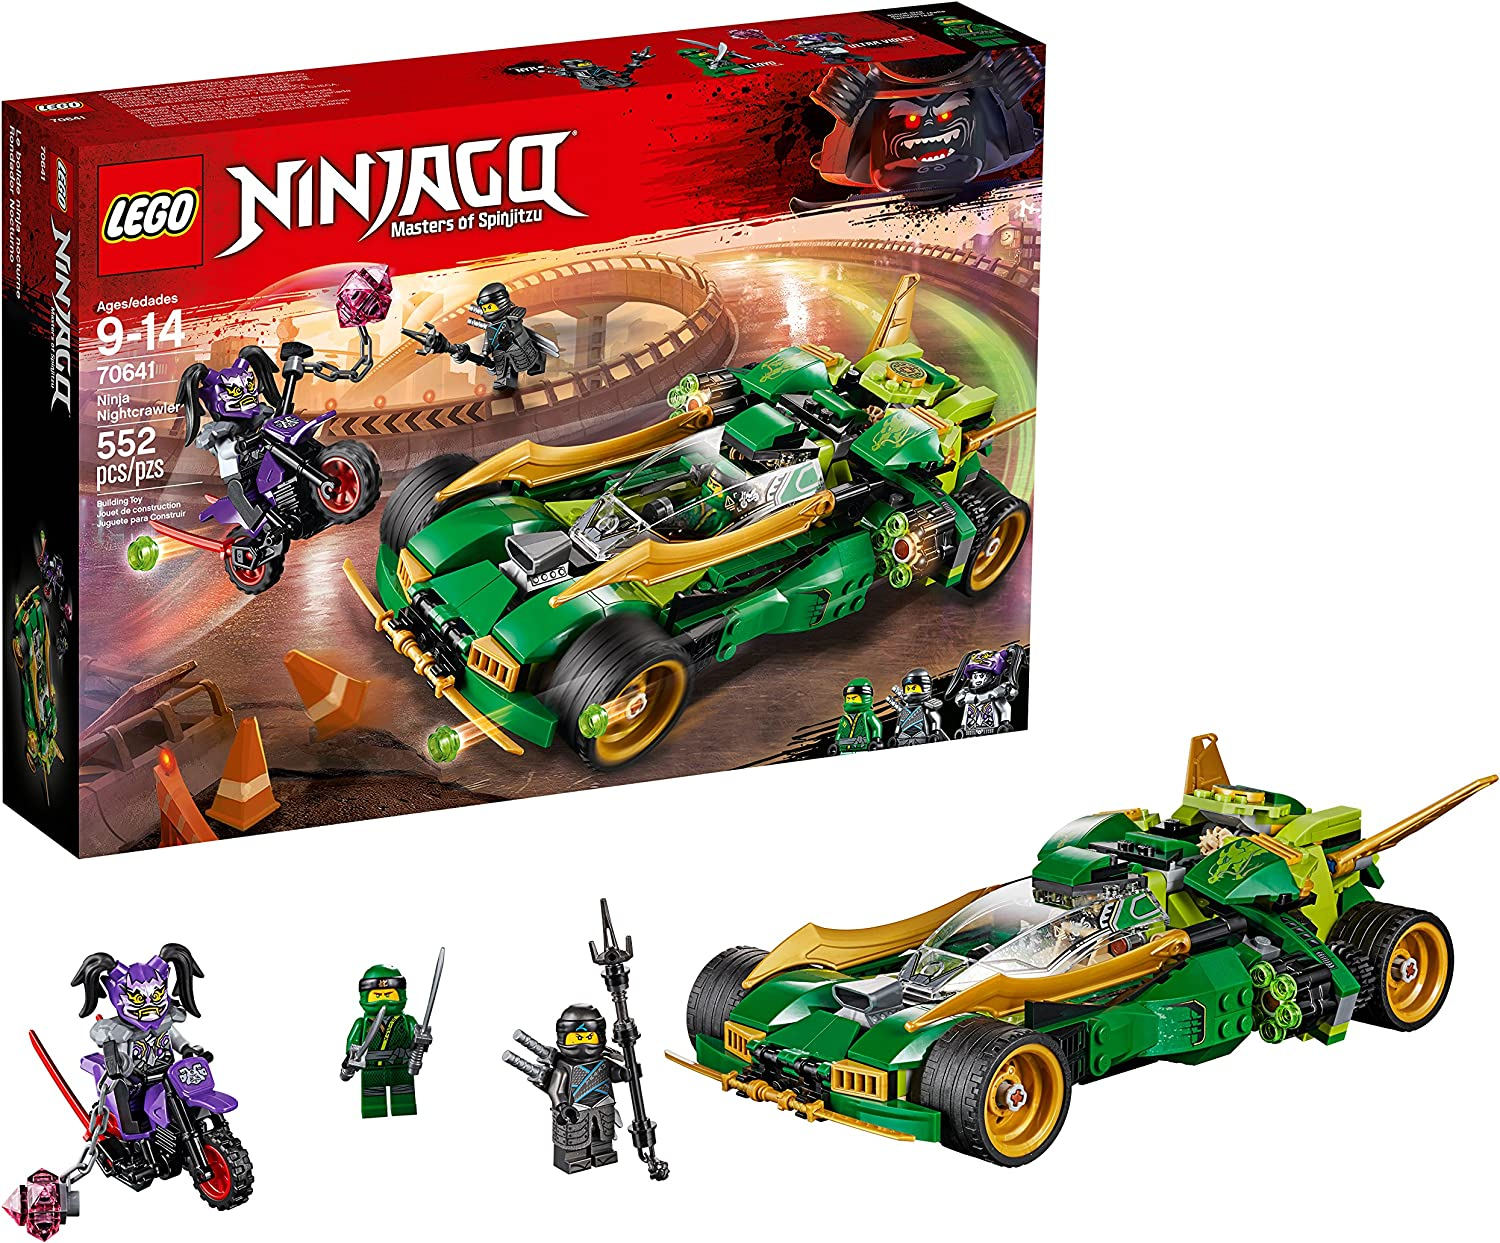 LEGO NINJAGO Ninja Nightcrawler 70641 Building Kit (552 Pieces)